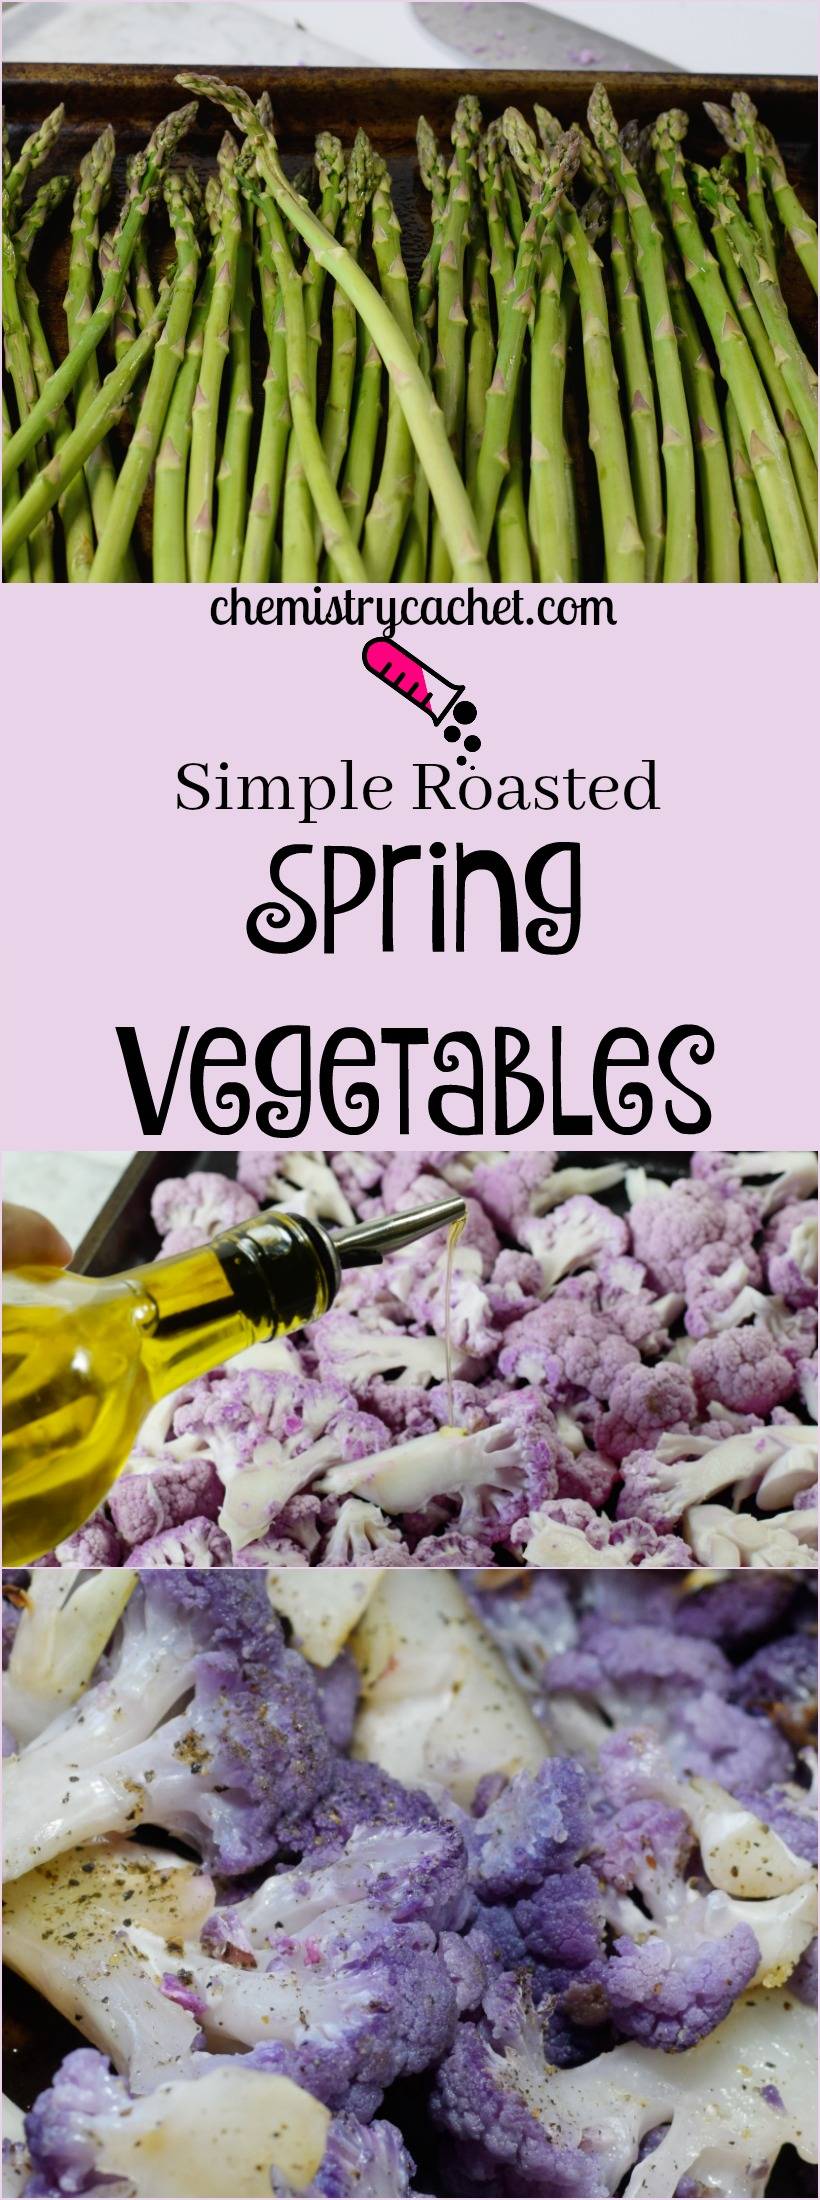 Simple Roasted Spring Vegetables. Spring Vegetable Recipe on chemistrycachet.com